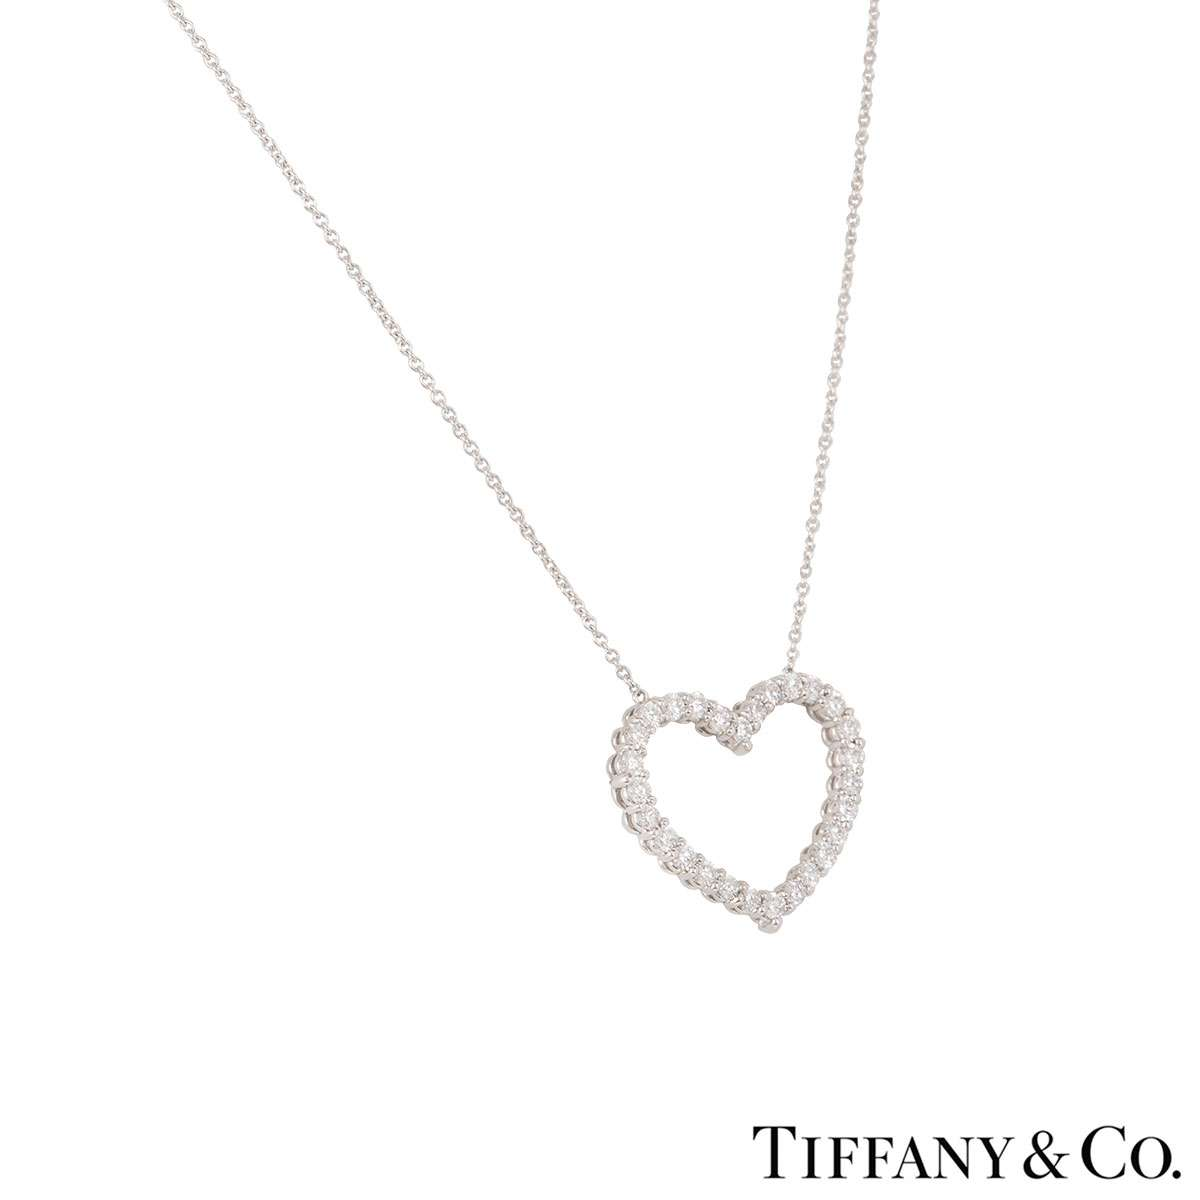 Tiffany & Co. Diamond Heart Pendant